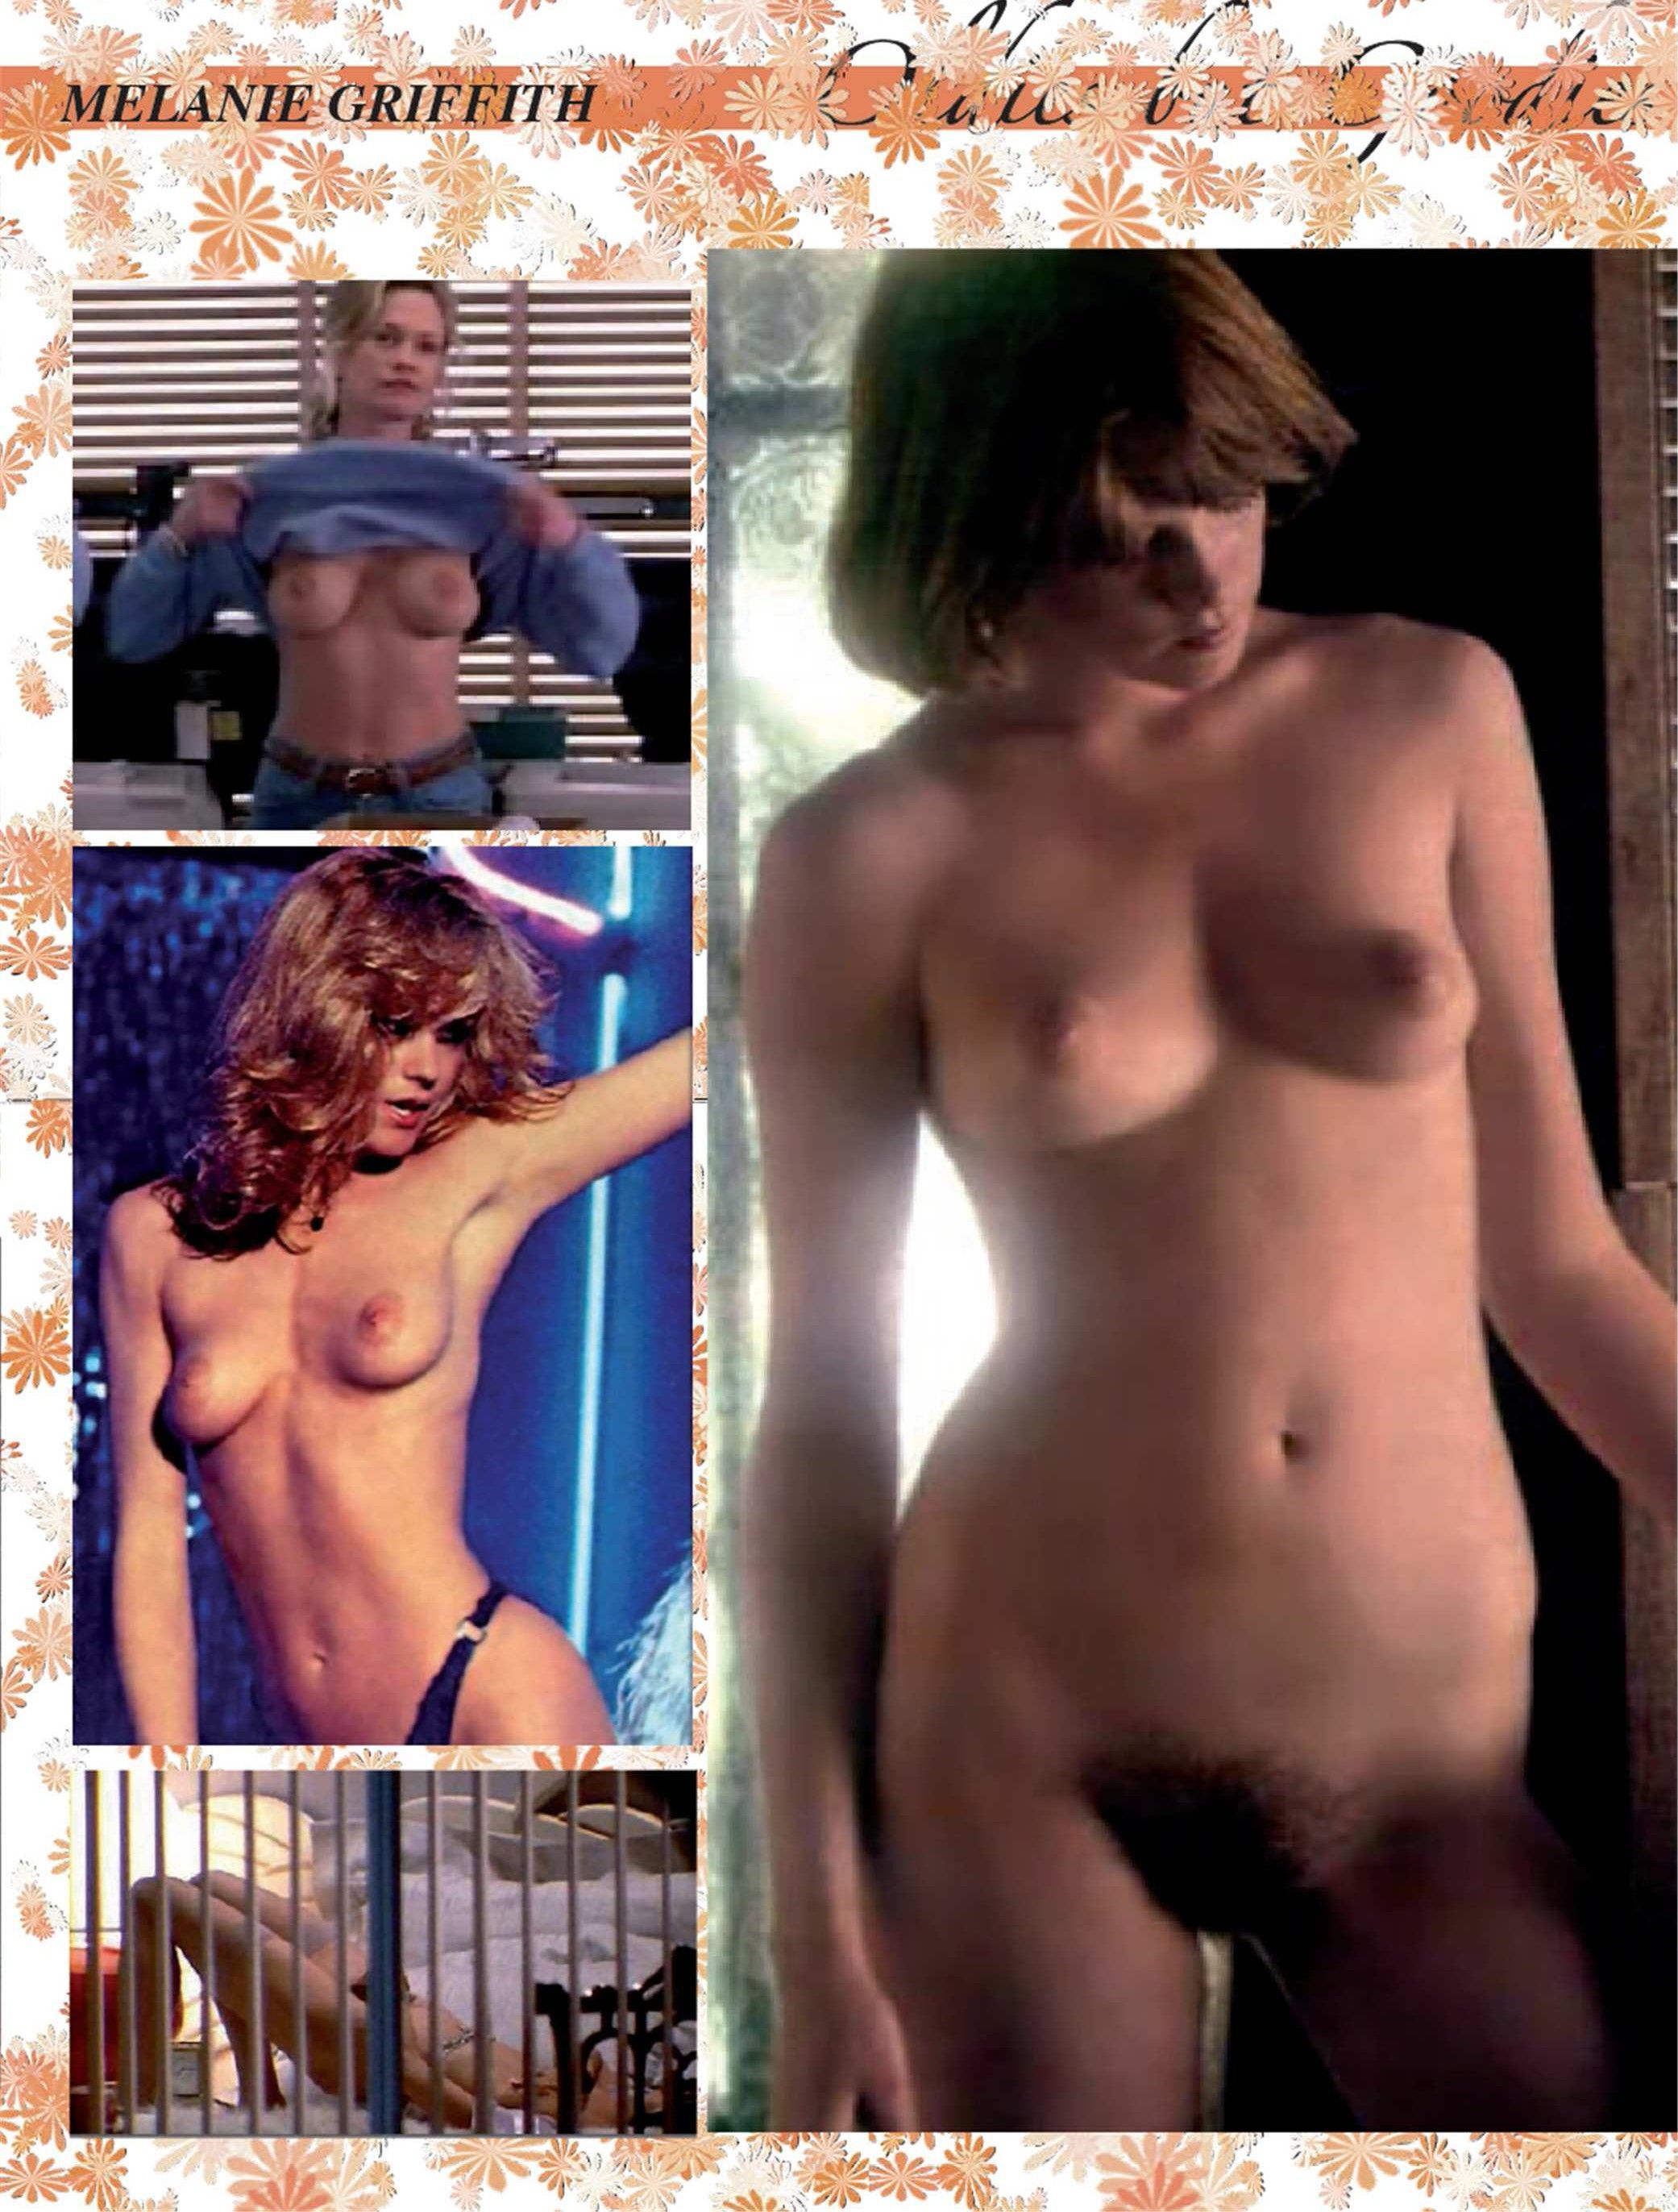 Nude rhiana griffith TheFappening: Paloma